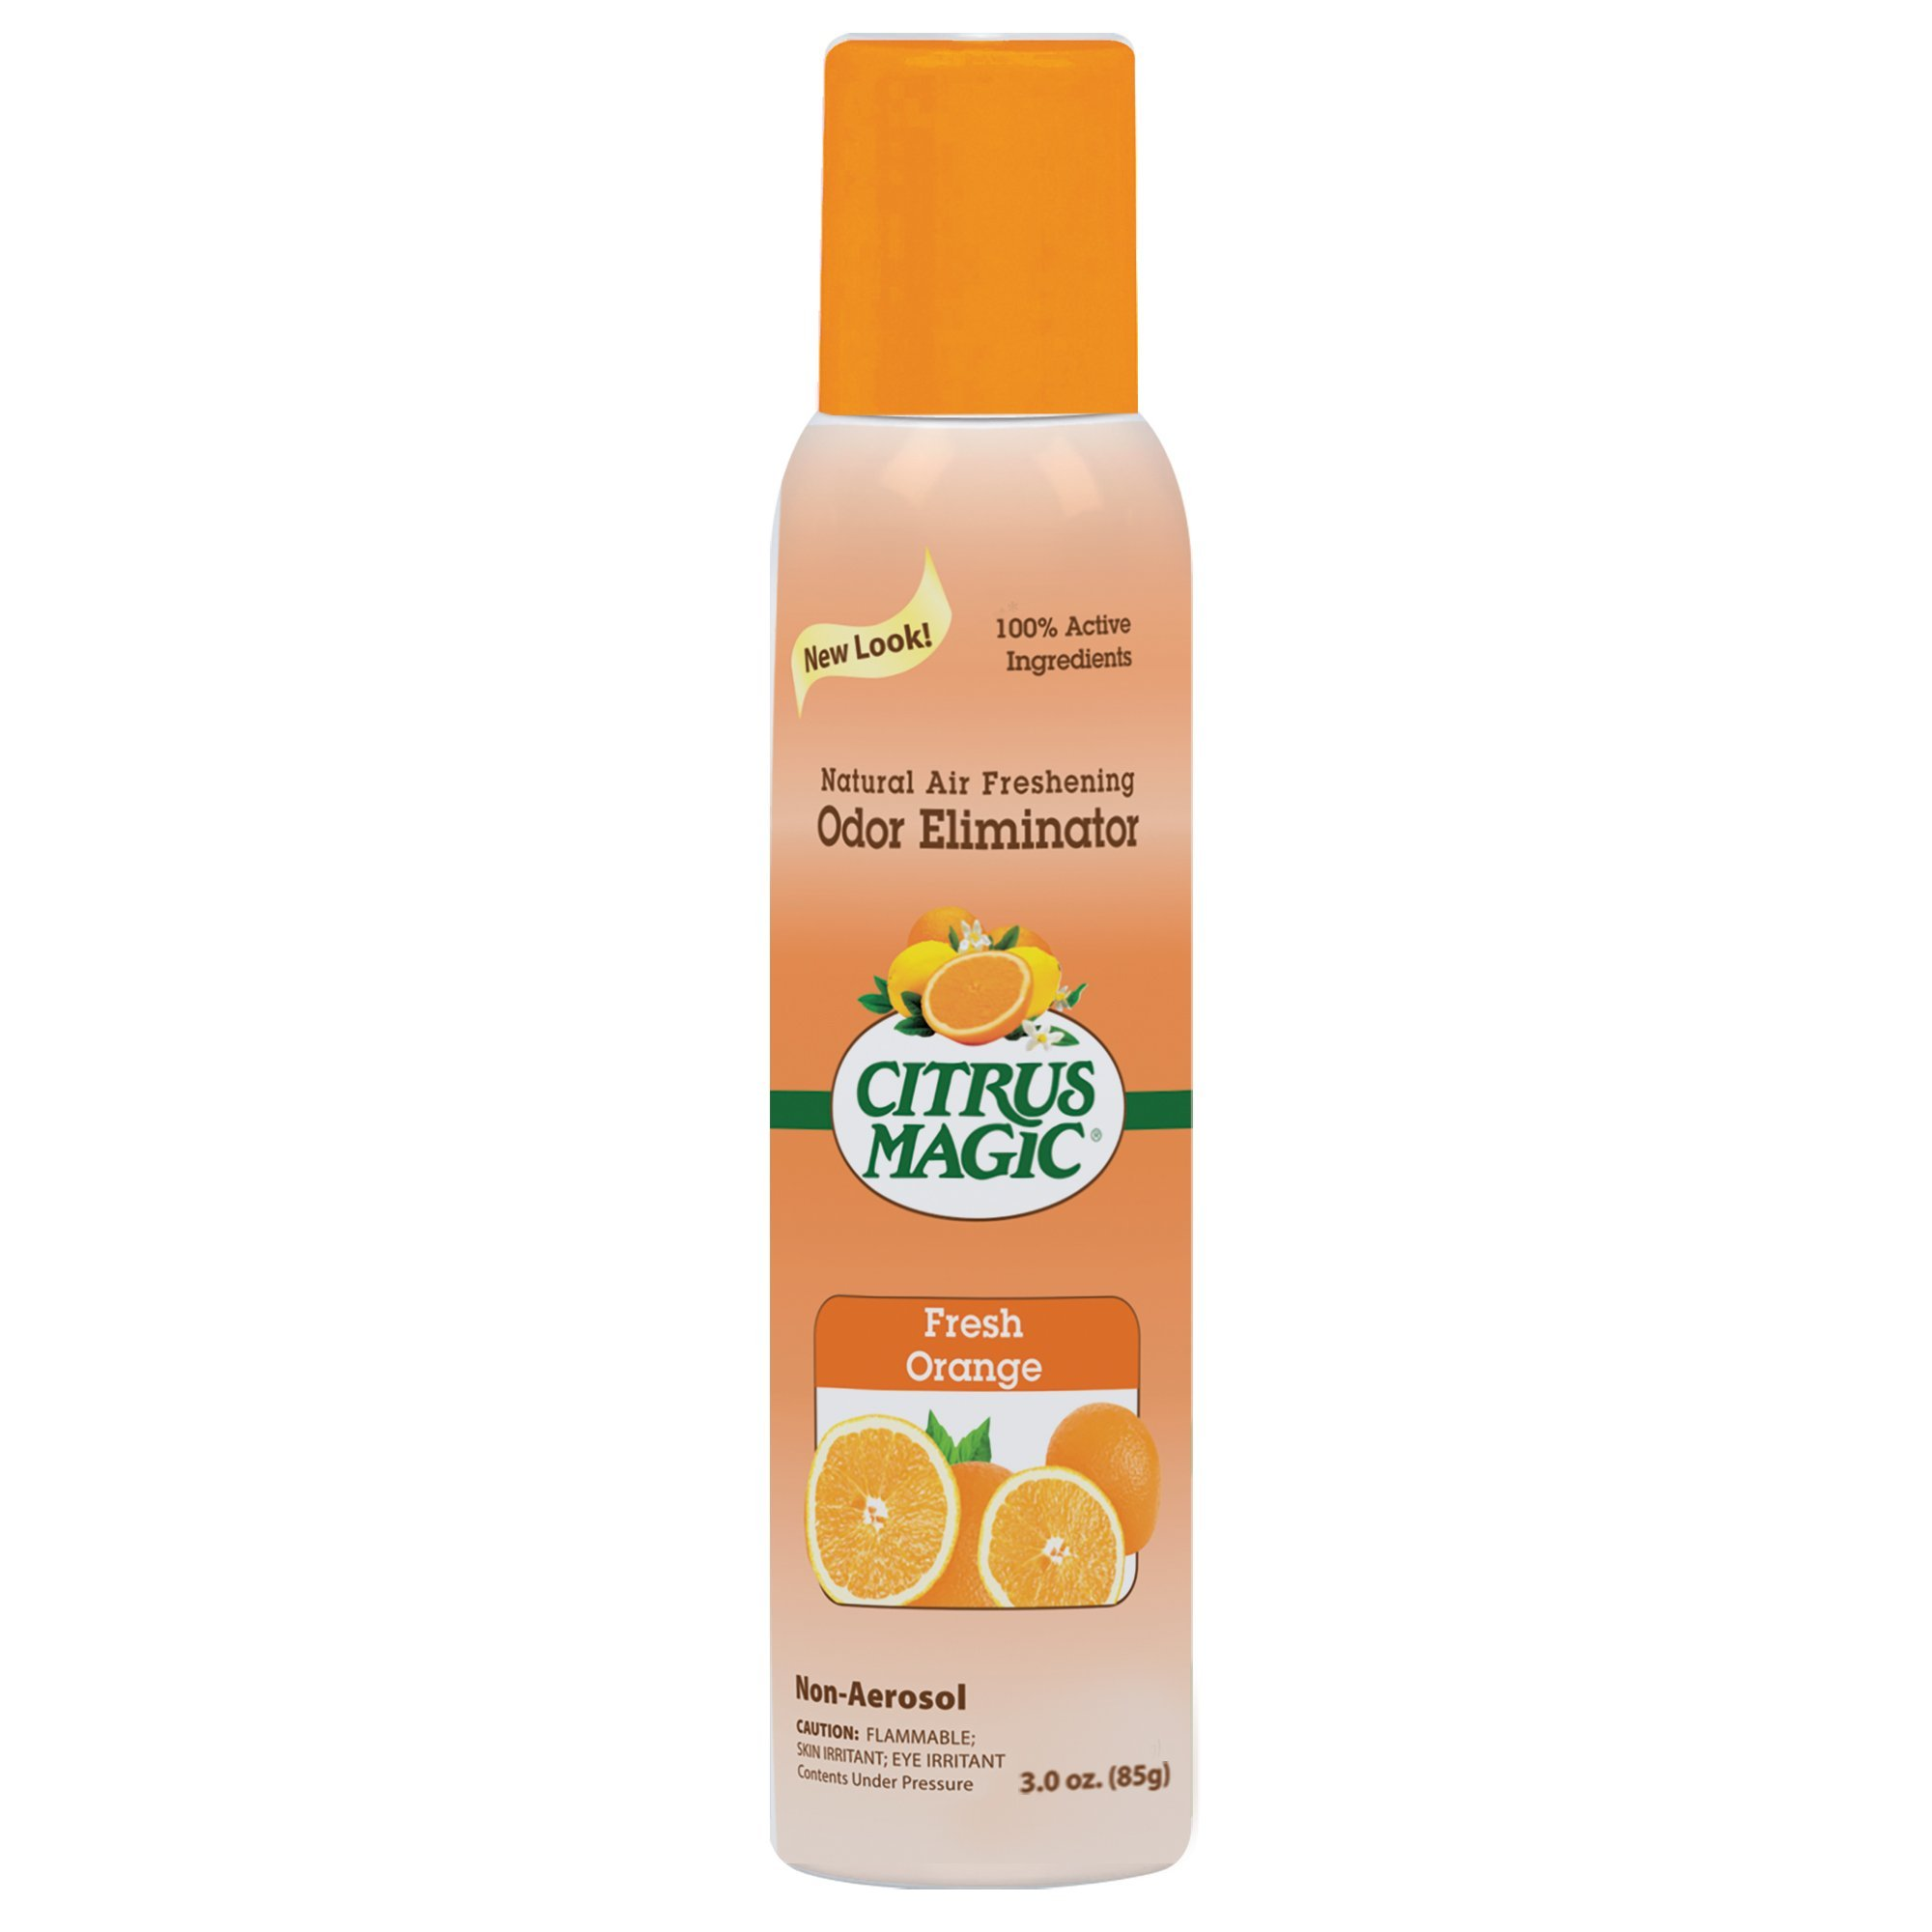 Citrus Magic Air Freshener Orange - 3.5 oz